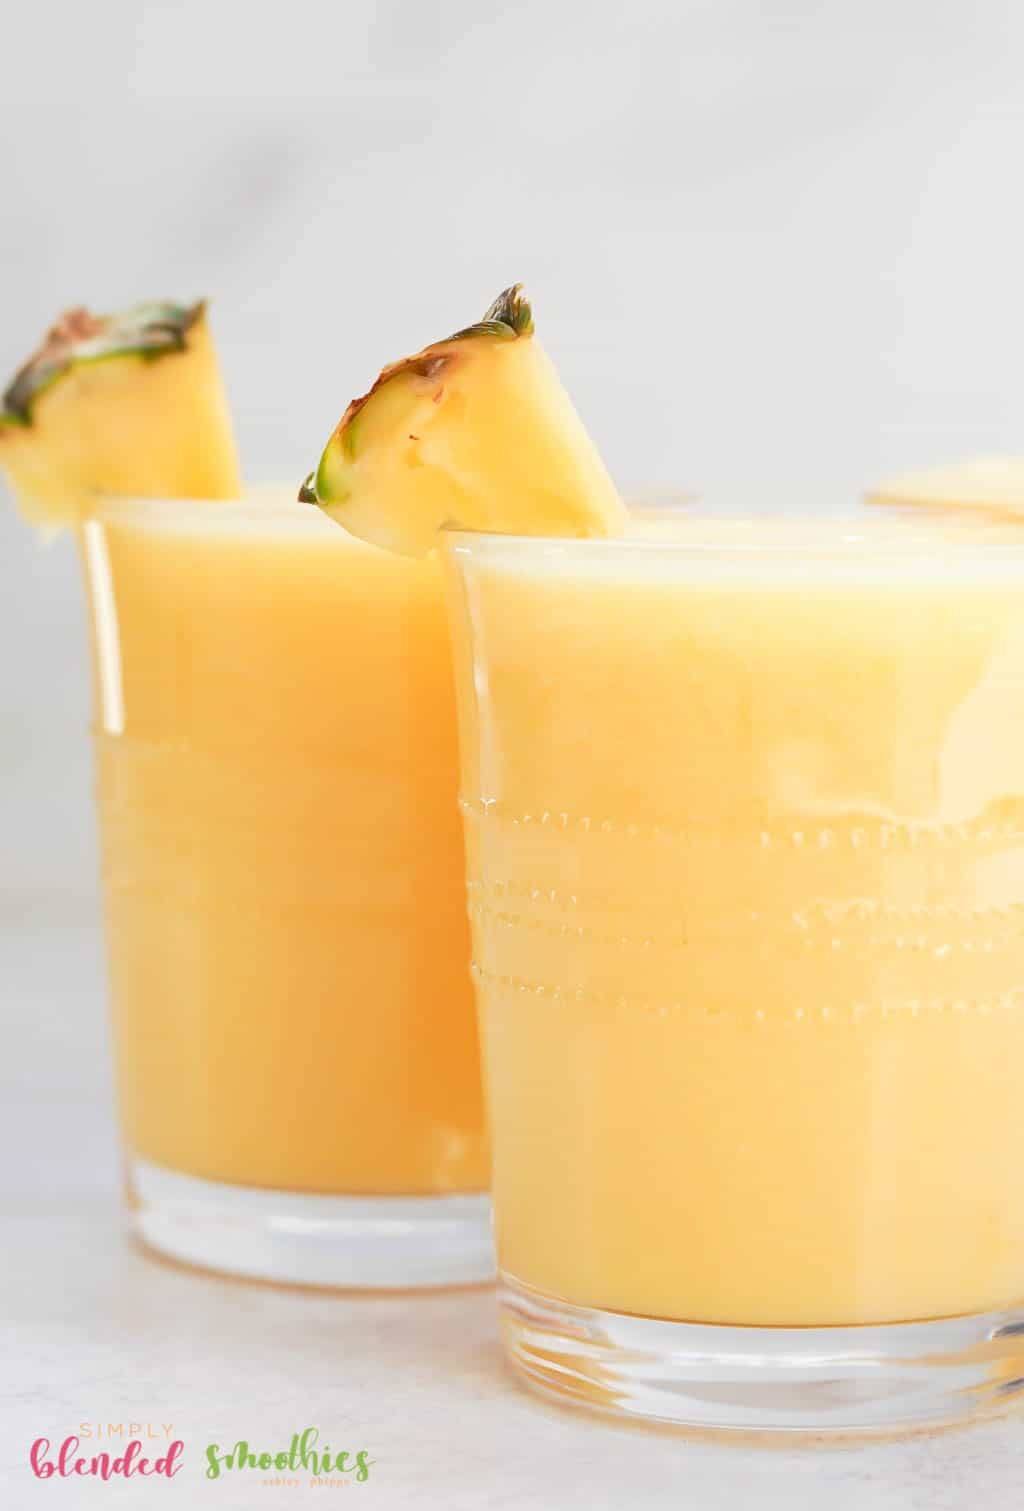 delicious and easy to make dairy-free pineapple smoothie with peaches